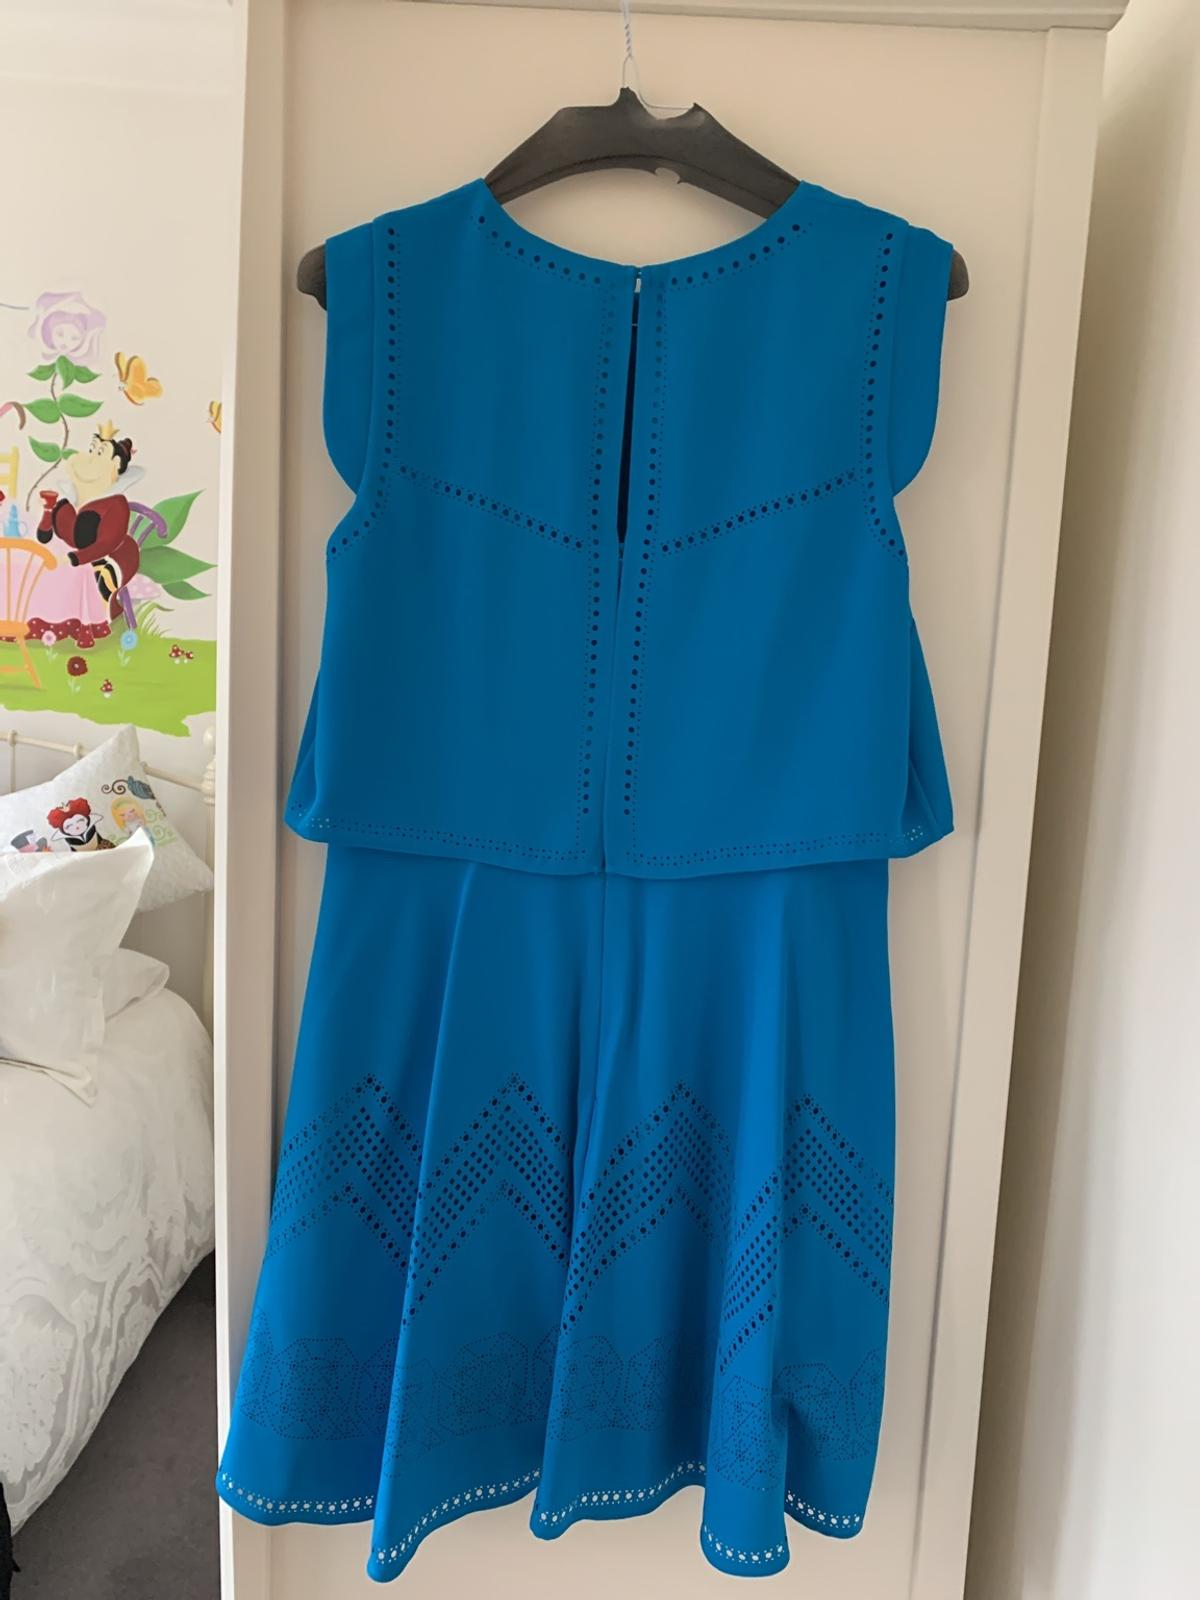 Petrol blue beautiful design and fabric will not disappoint as new condition a real head turner size 14